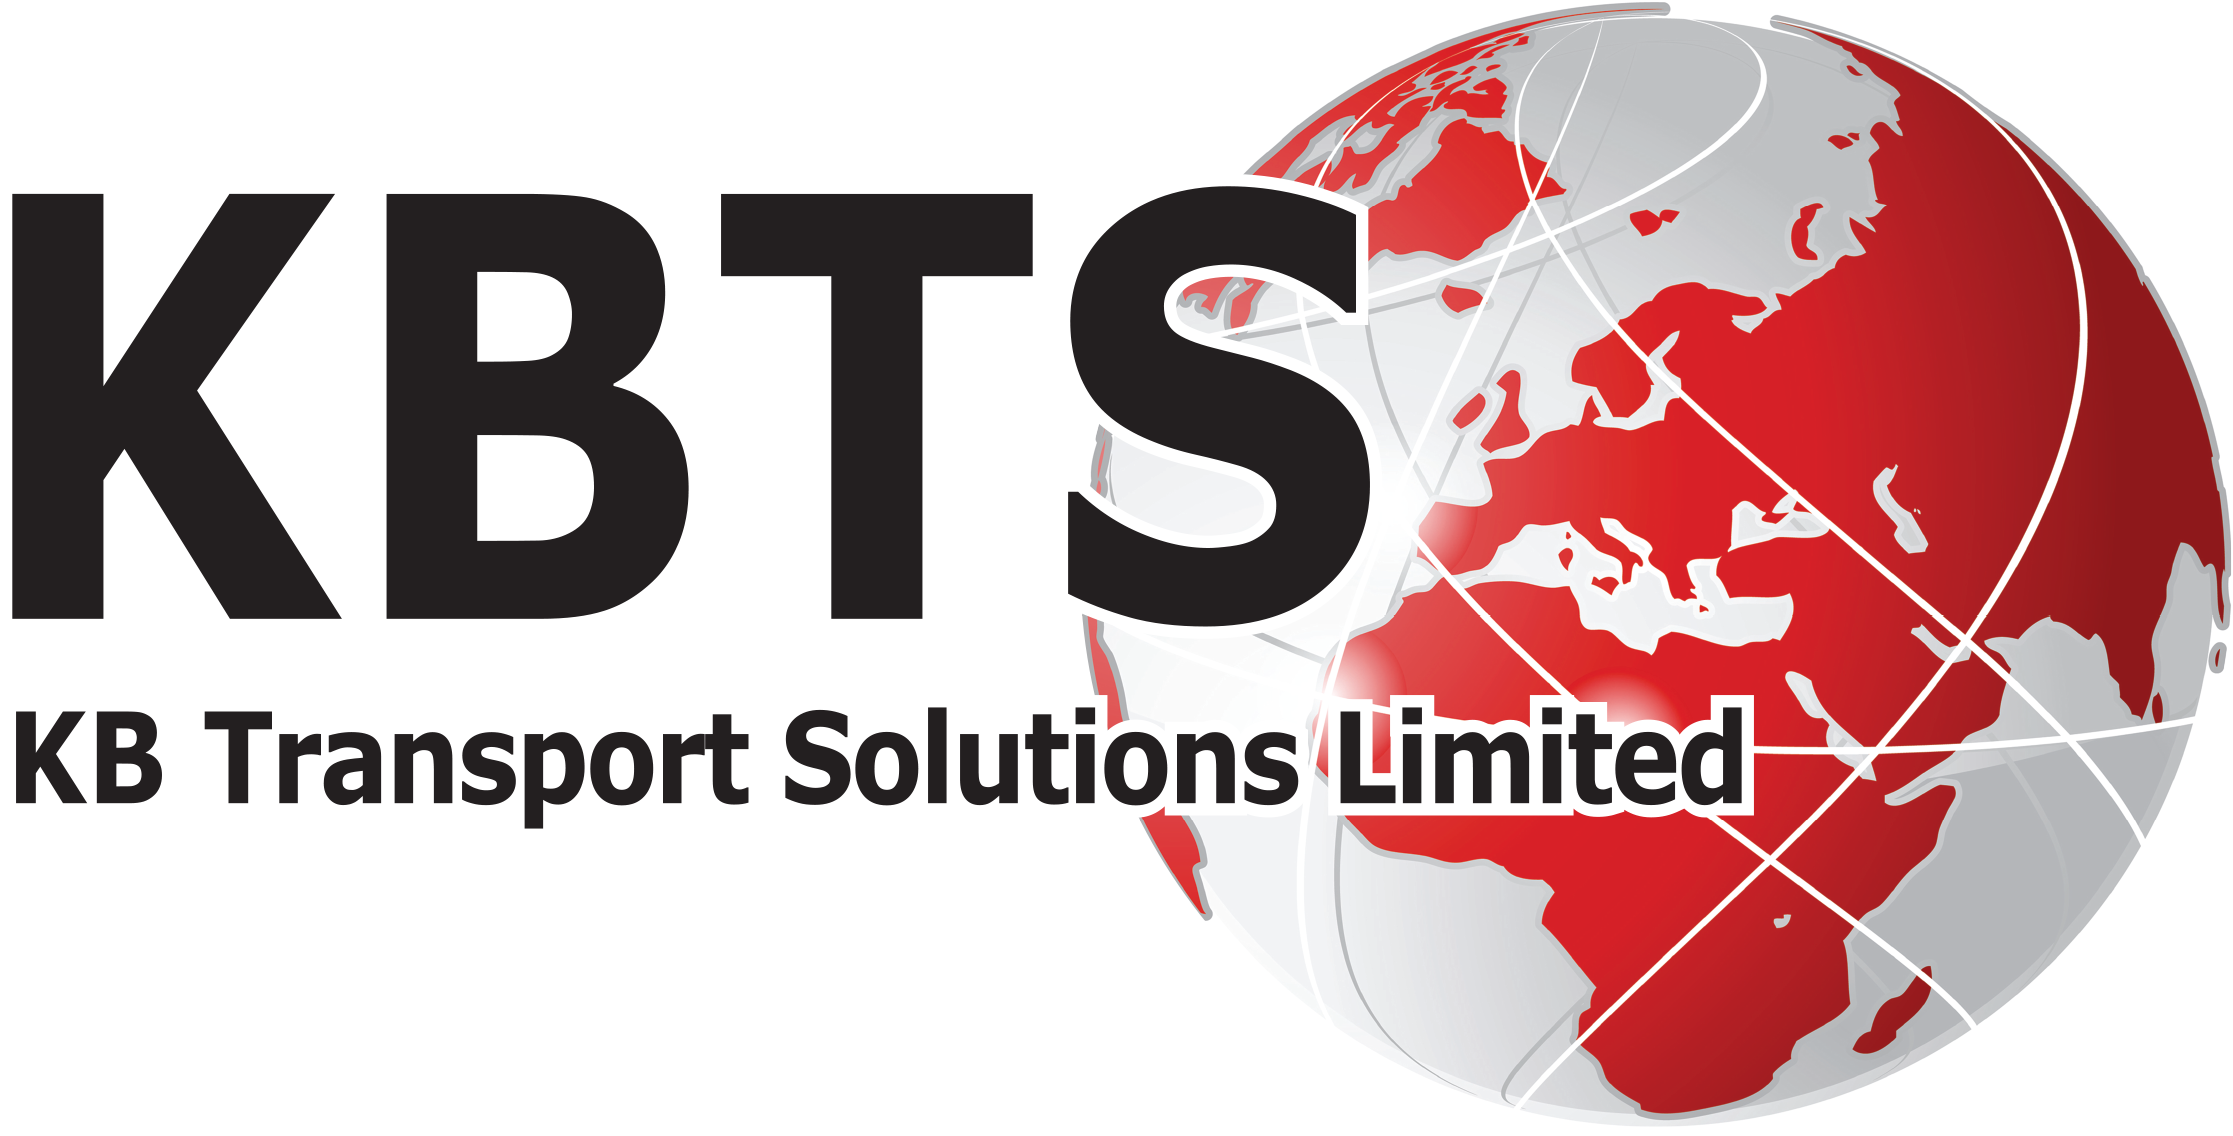 KB Transport Solutions Limited